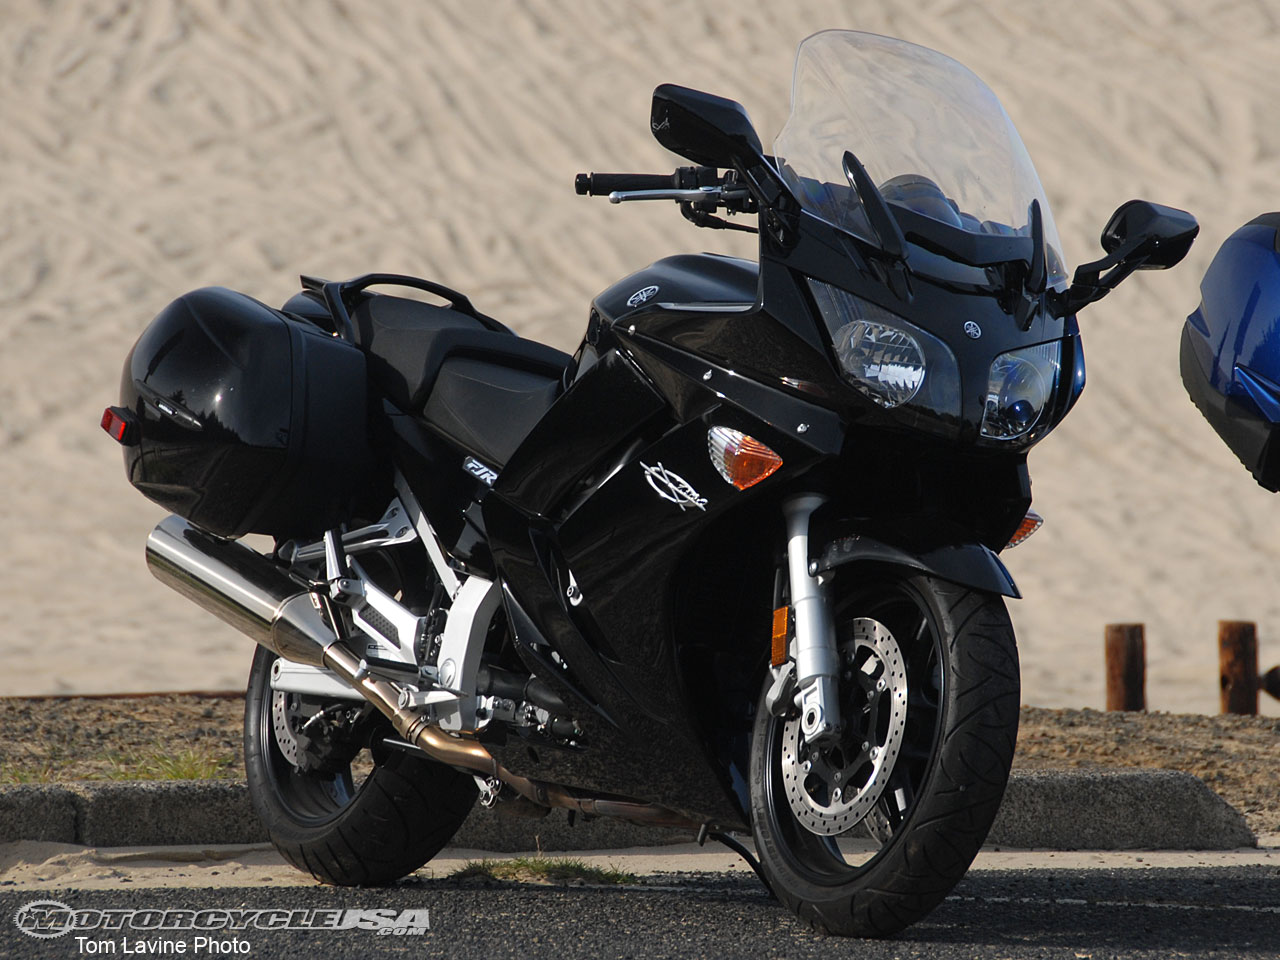 Yamaha FJR 1300 AS 2009 #3